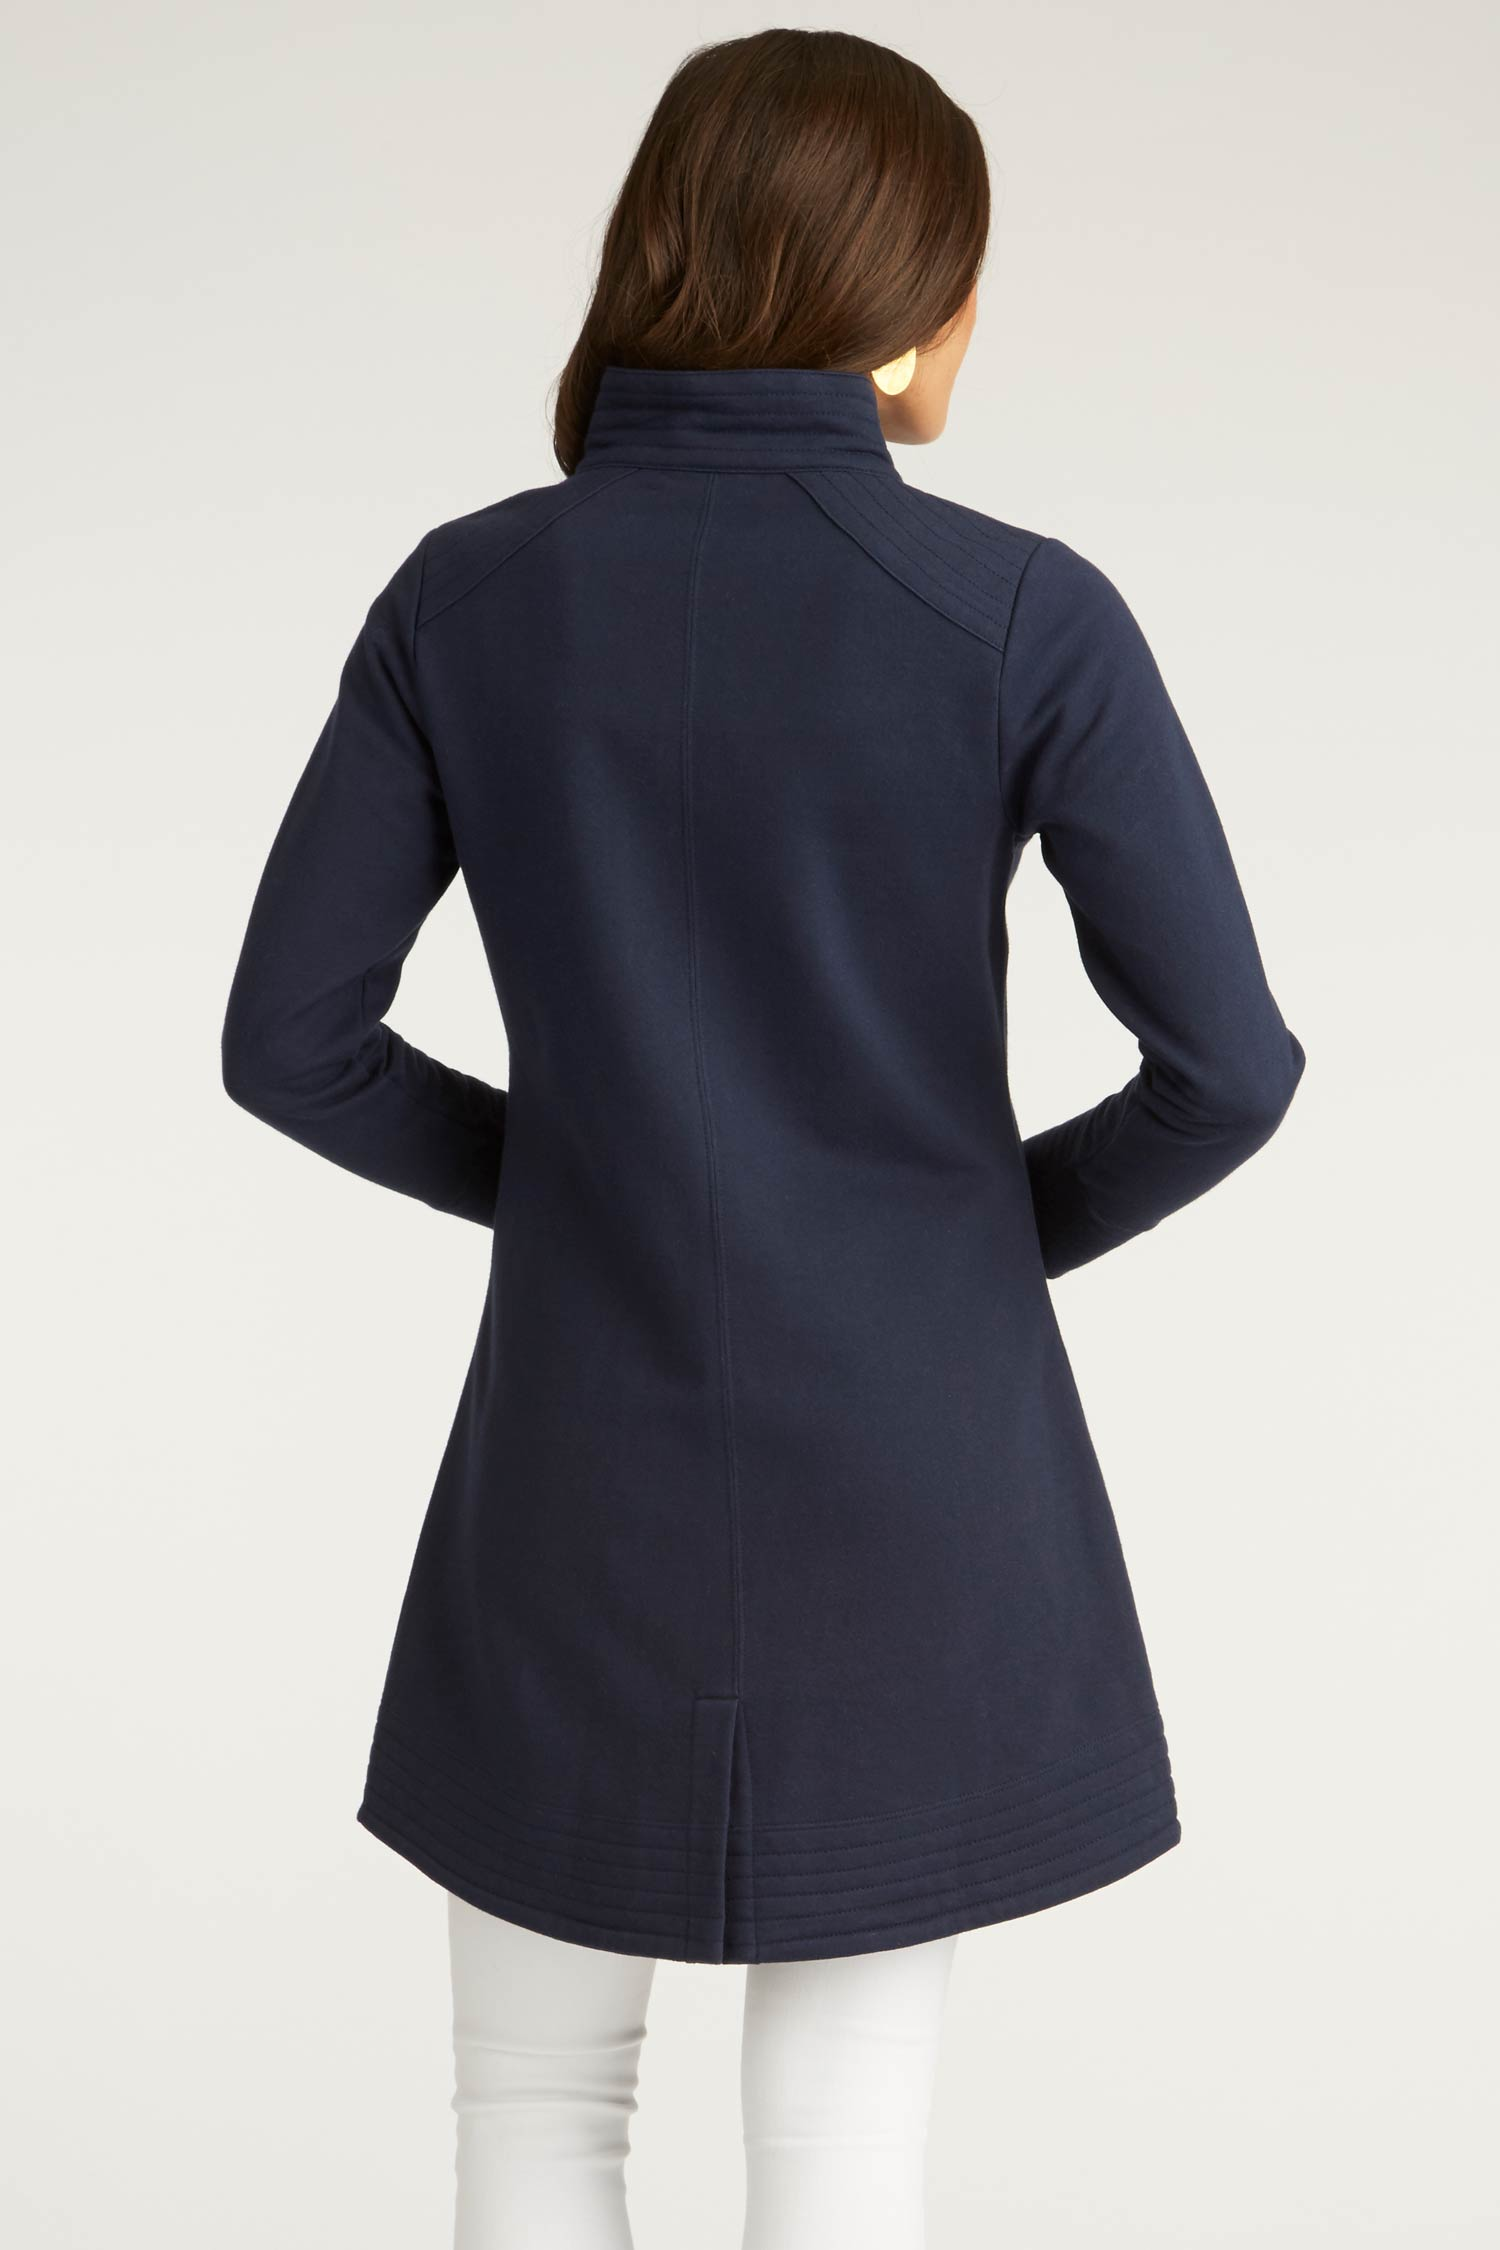 Womens Fleece Jacket | A Line Coat | Navy